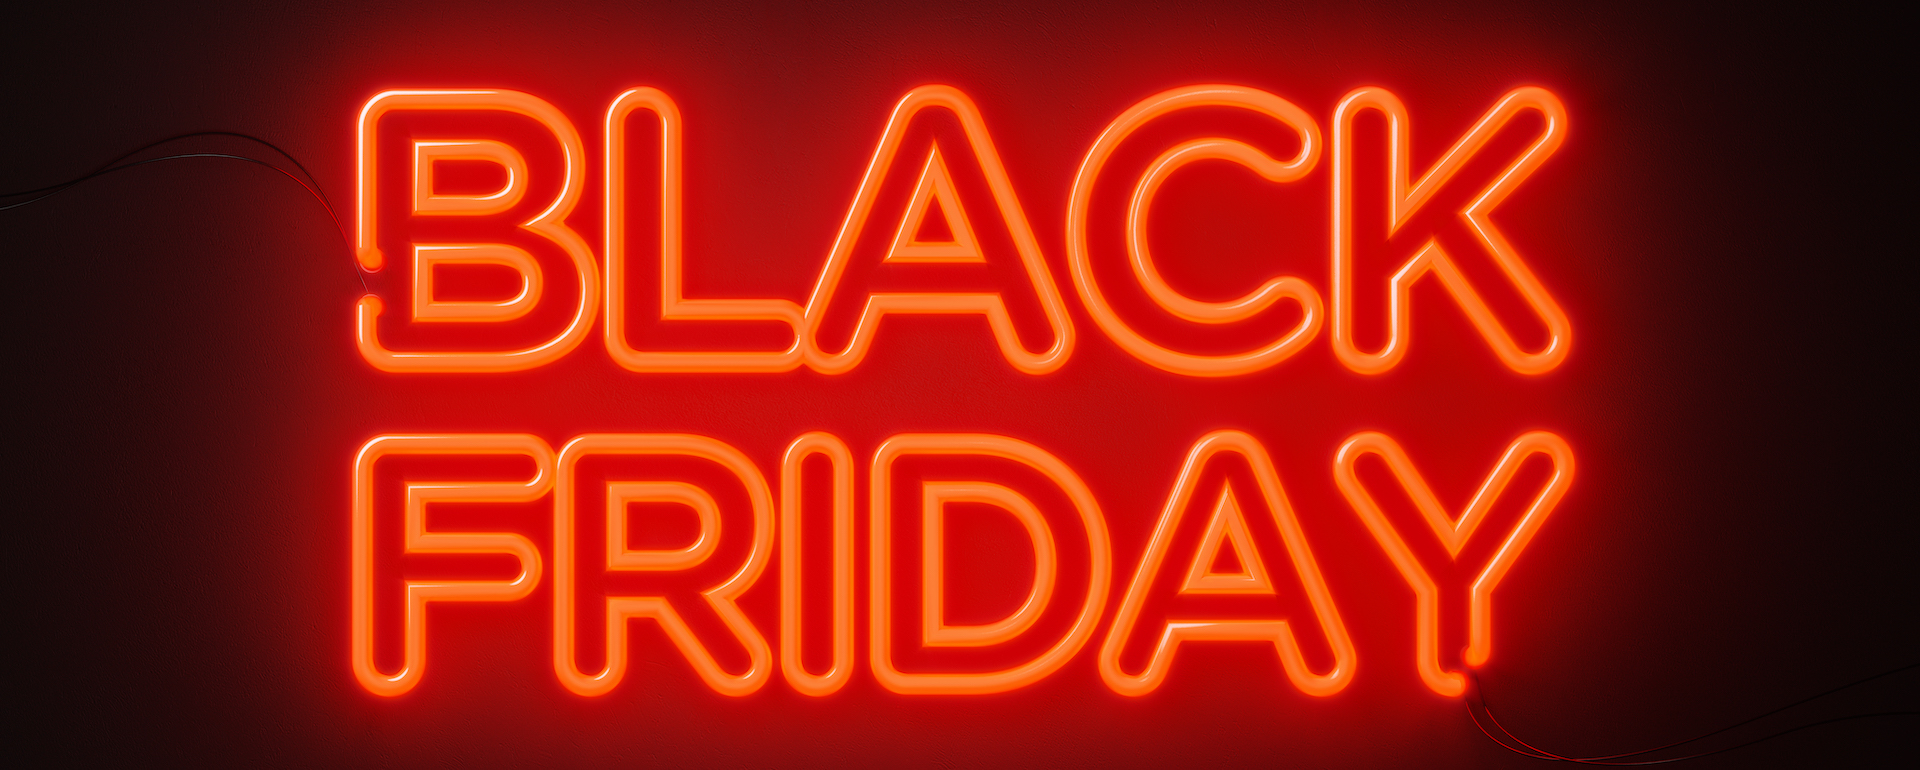 6 Simple Ways for Brand's to Stand Out on Black Friday